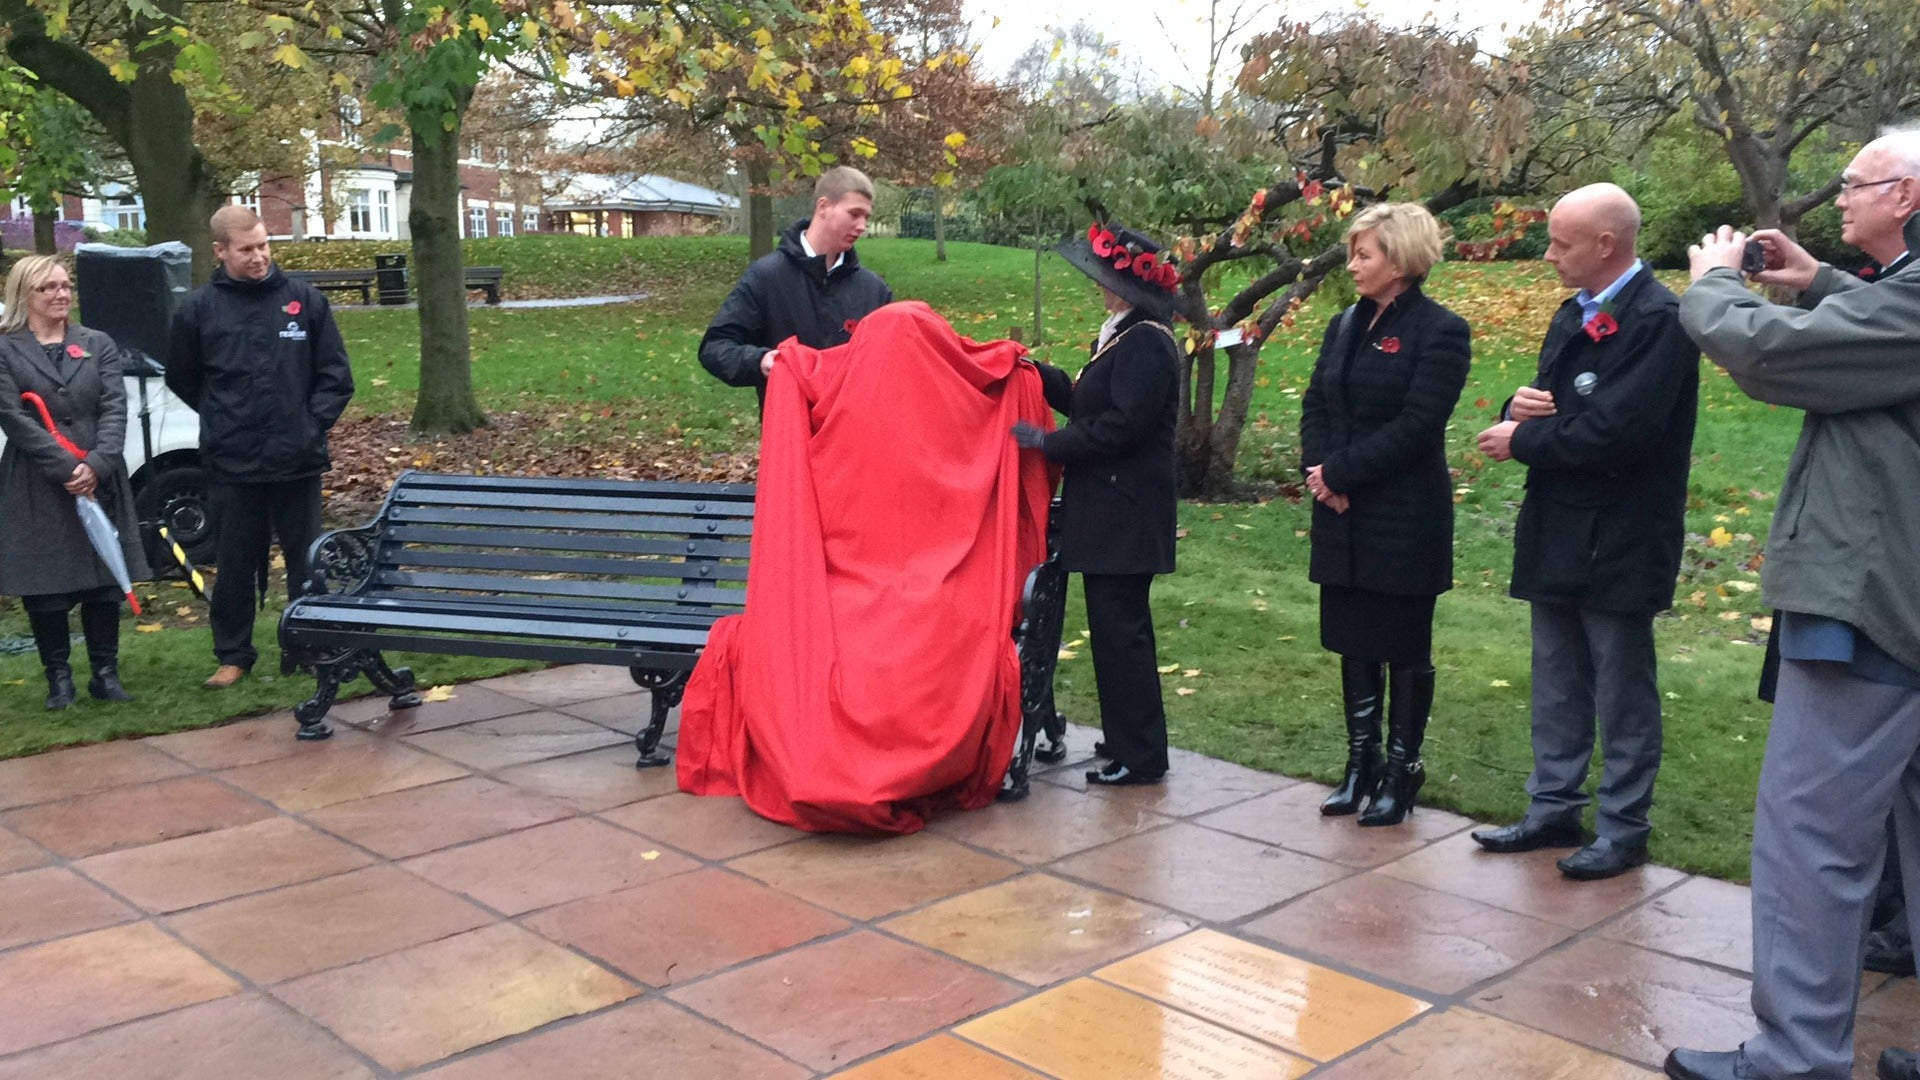 Statue on a bench covered in a red cloth, ready to be unveiled with crowd